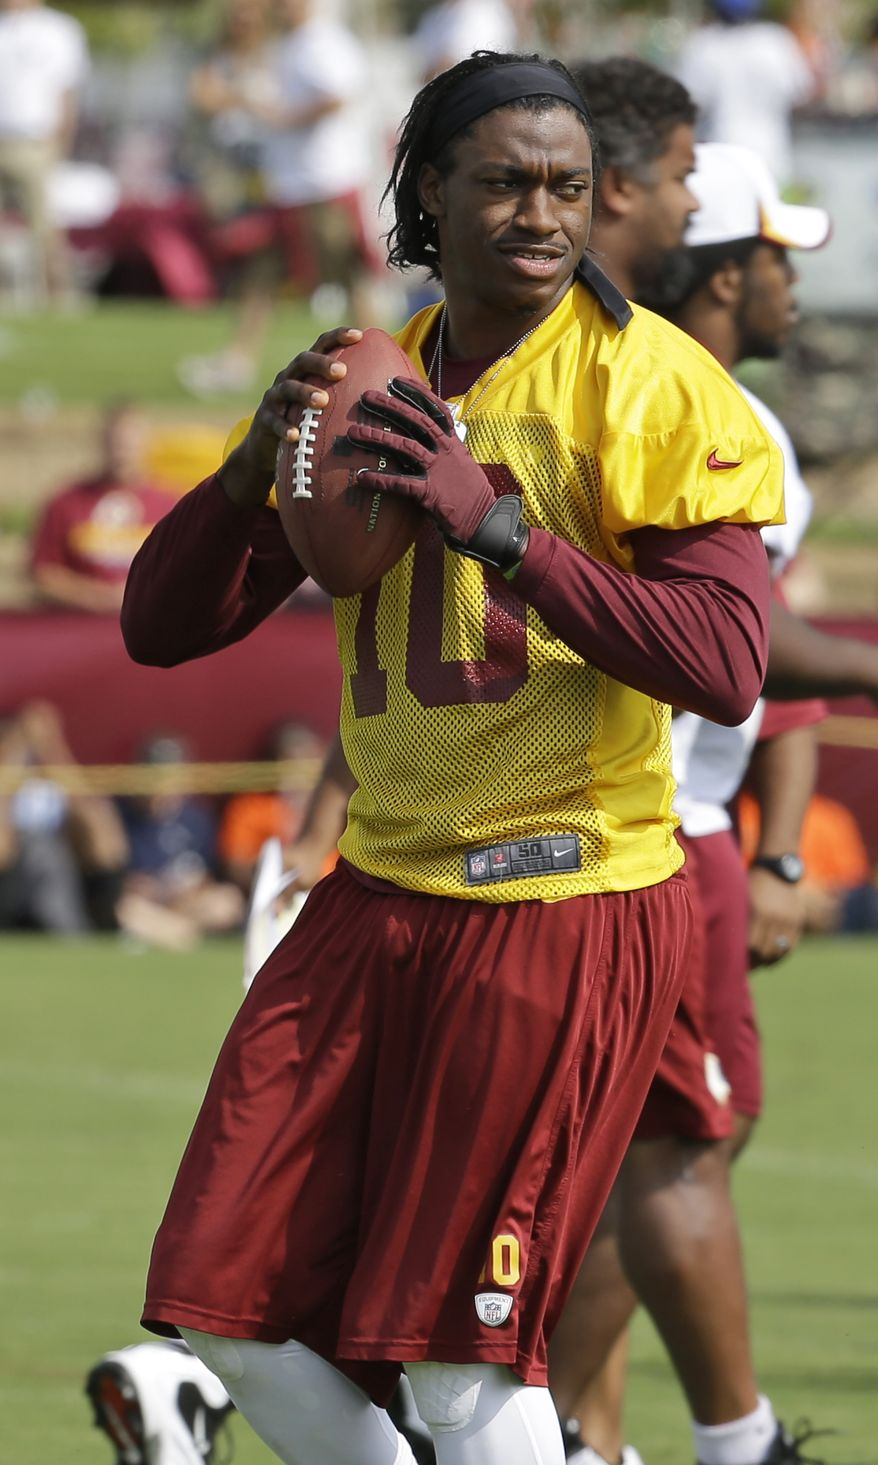 Washington Redskins quarterback Robert Griffin III tosses a pass at the start of training camp at the teams NFL football training facility in Richmond, Va. Thursday, July 25, 2013. The chances of becoming a pro football player are 1.7%.